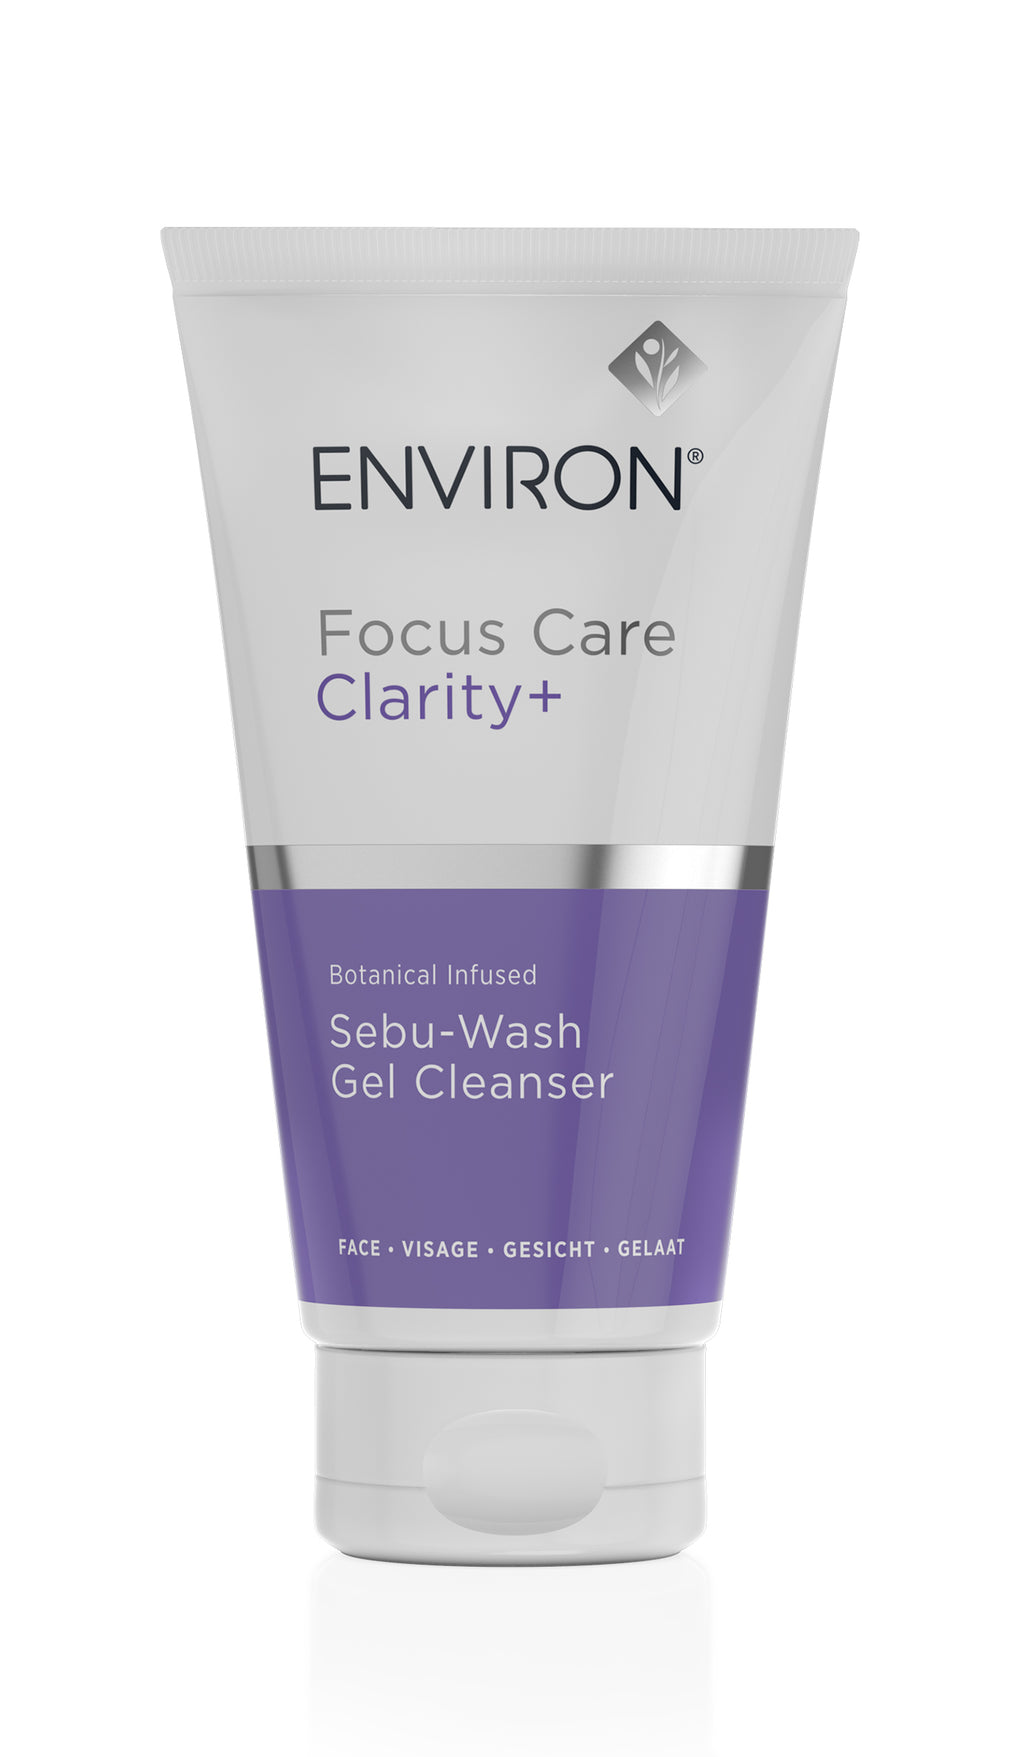 Botanical Infused Sebu-Wash Gel Cleanser